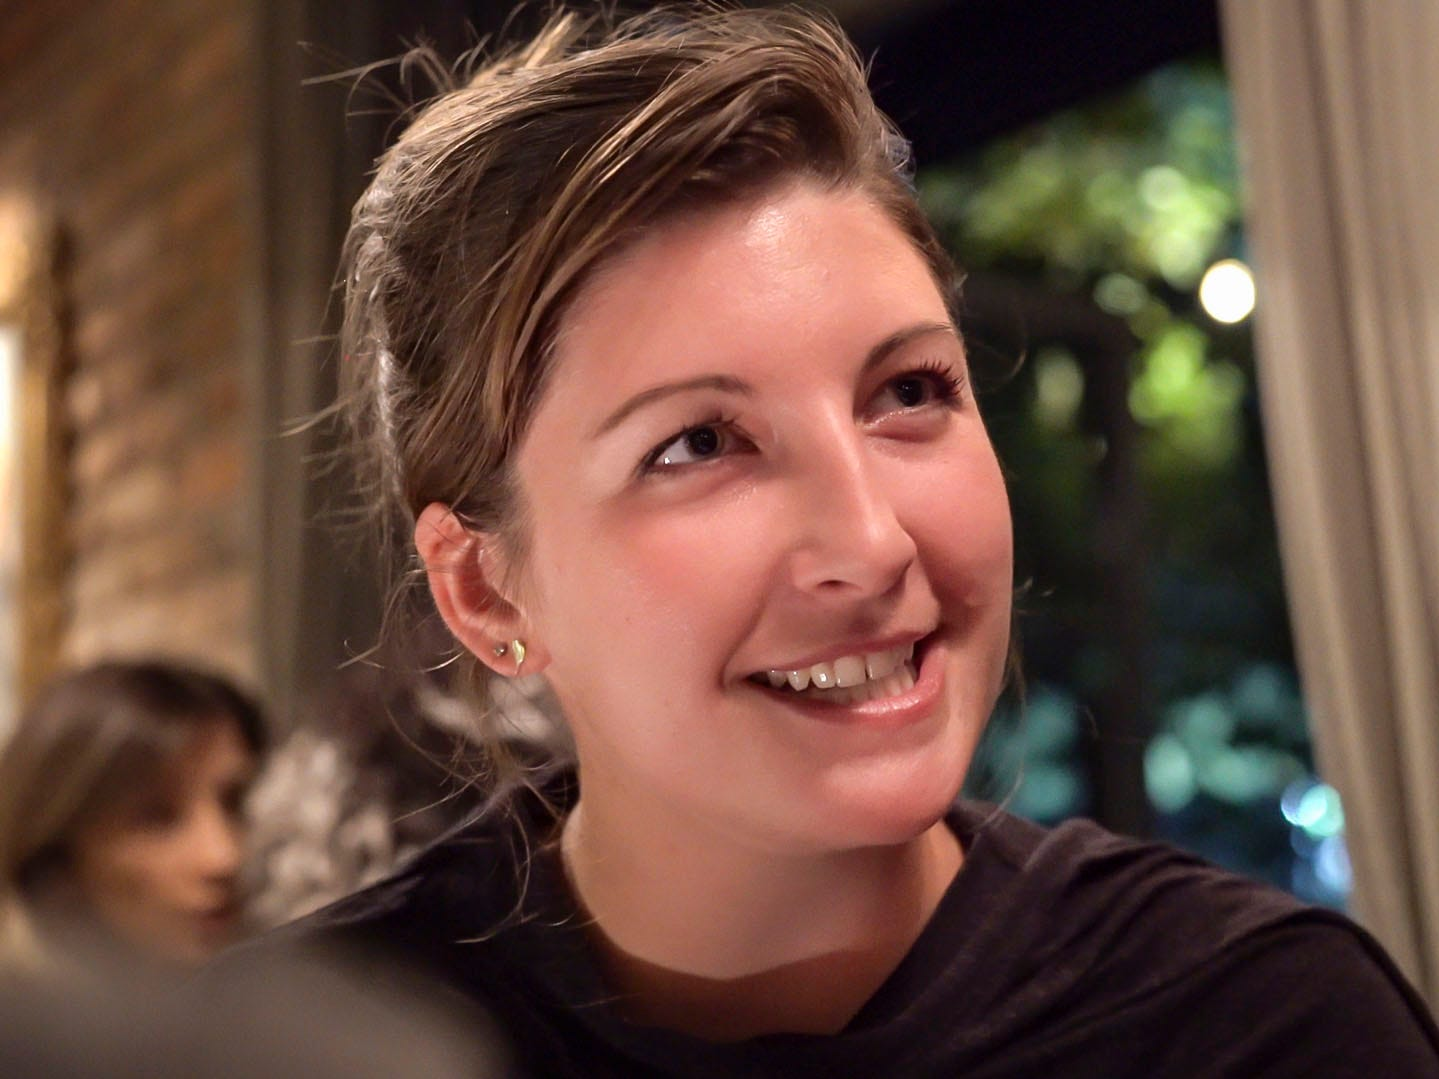 Suzanne Sontag, 25, of Ankeny, Project and Development Coordinatorfor TOKA, a summer camp that hosts exchanges between Kosovo and Iowa youth shown Wednesday Sept. 19, 2018, in Pristina, Kosovo.